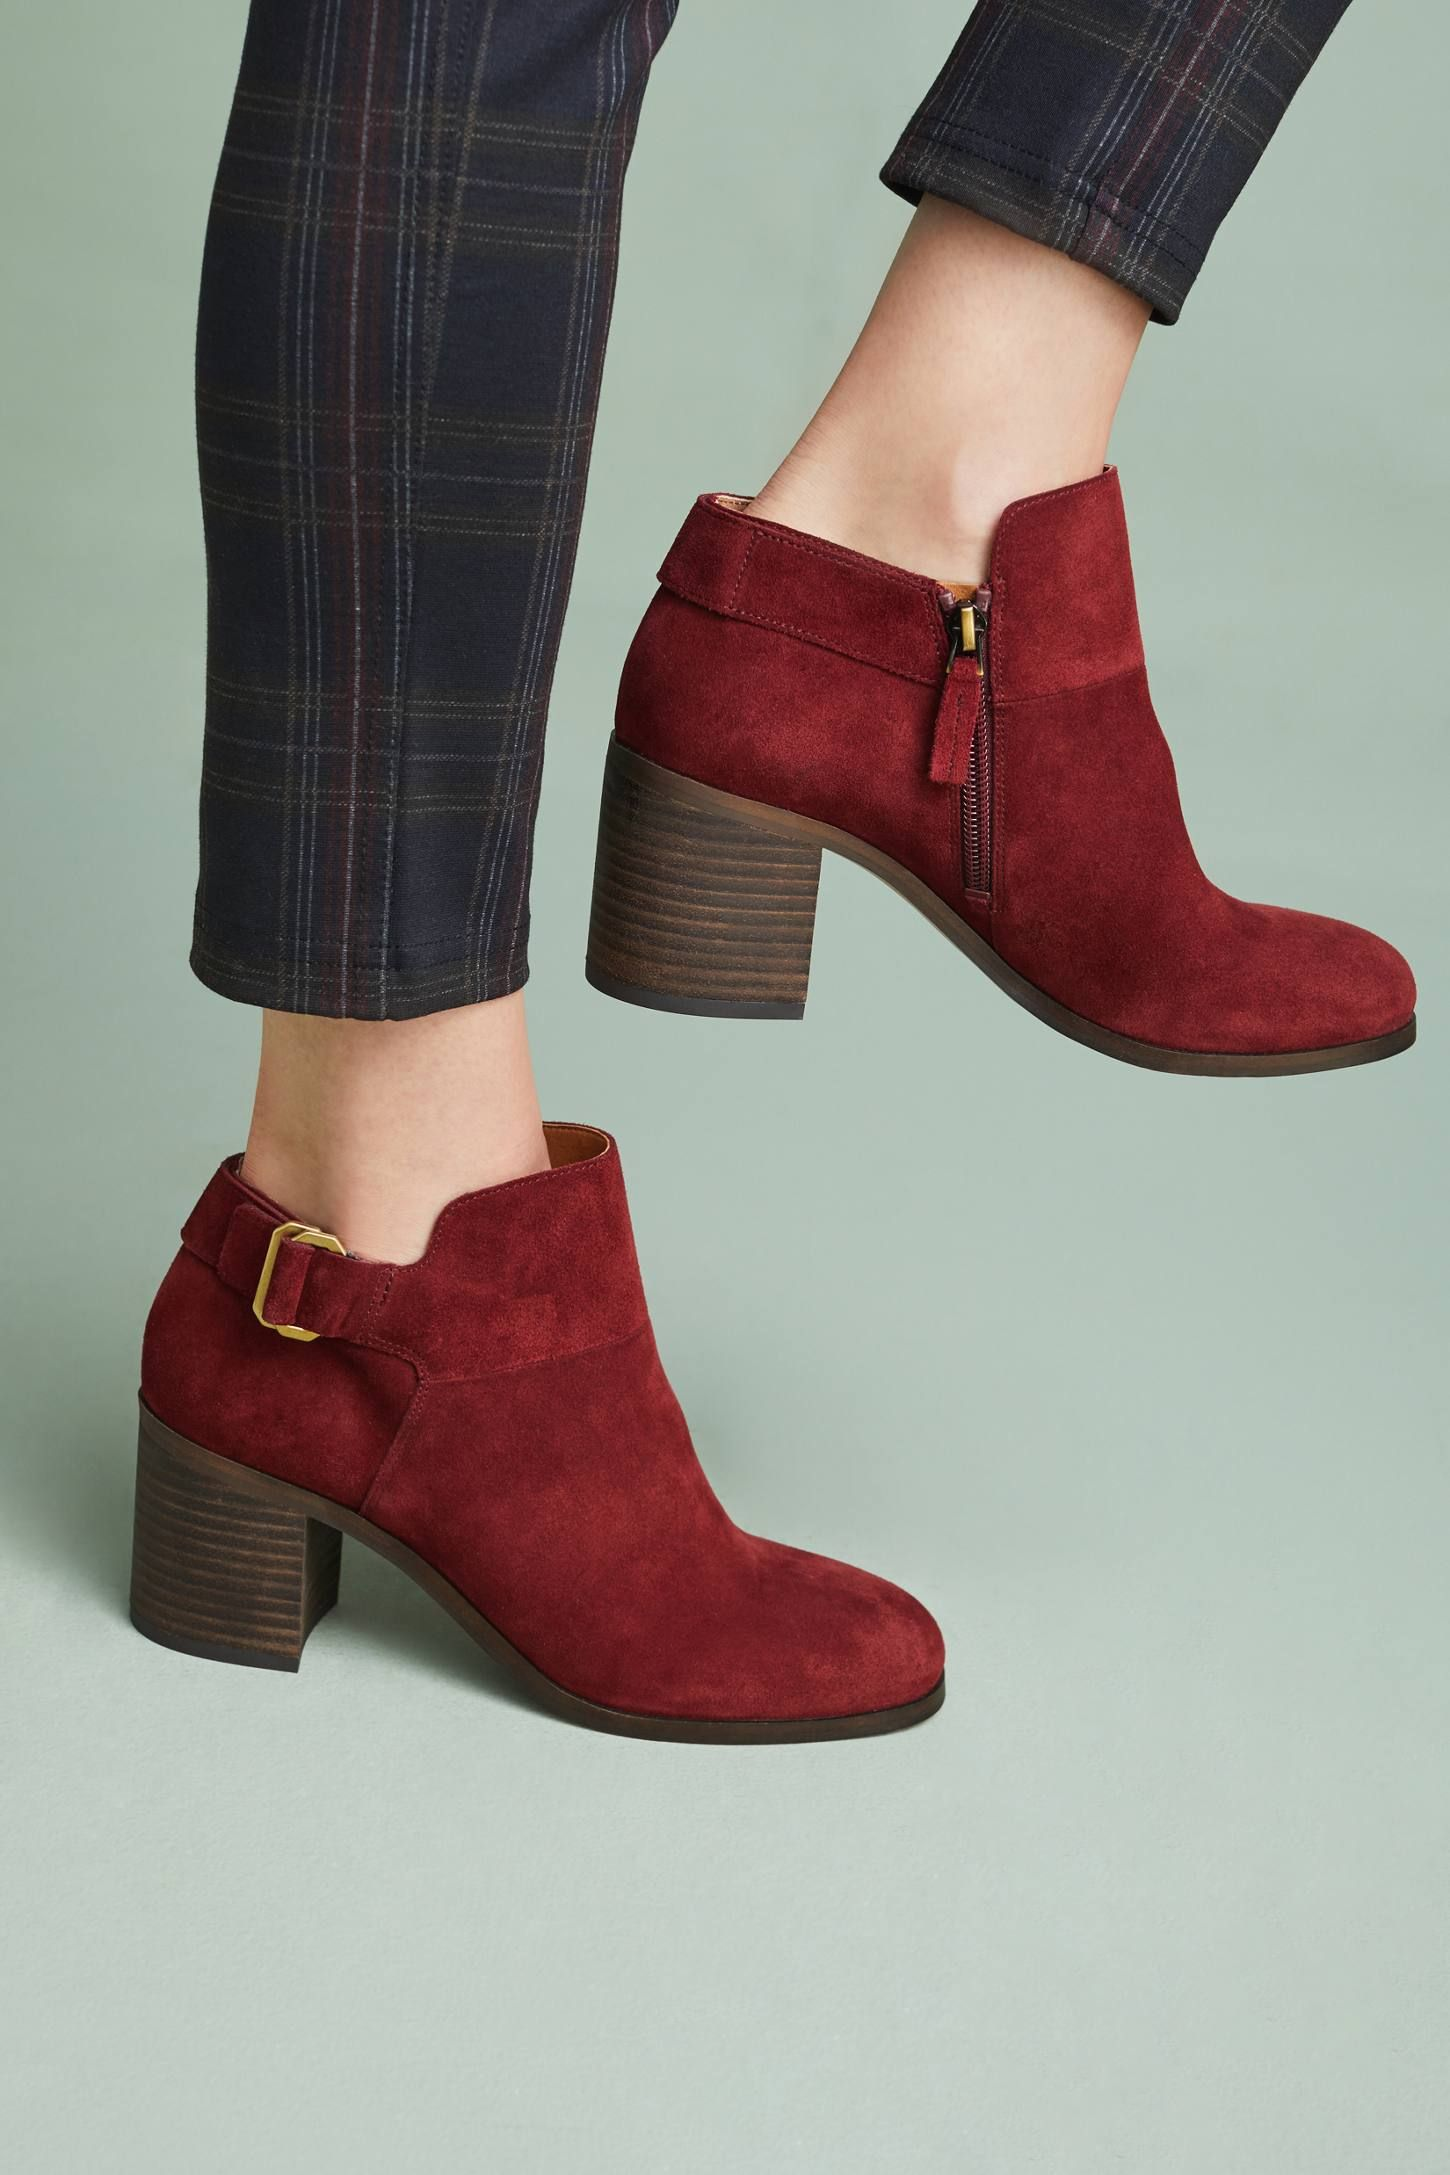 eed3ee7e584b Sarto by Franco Sarto Madison Ankle Boots